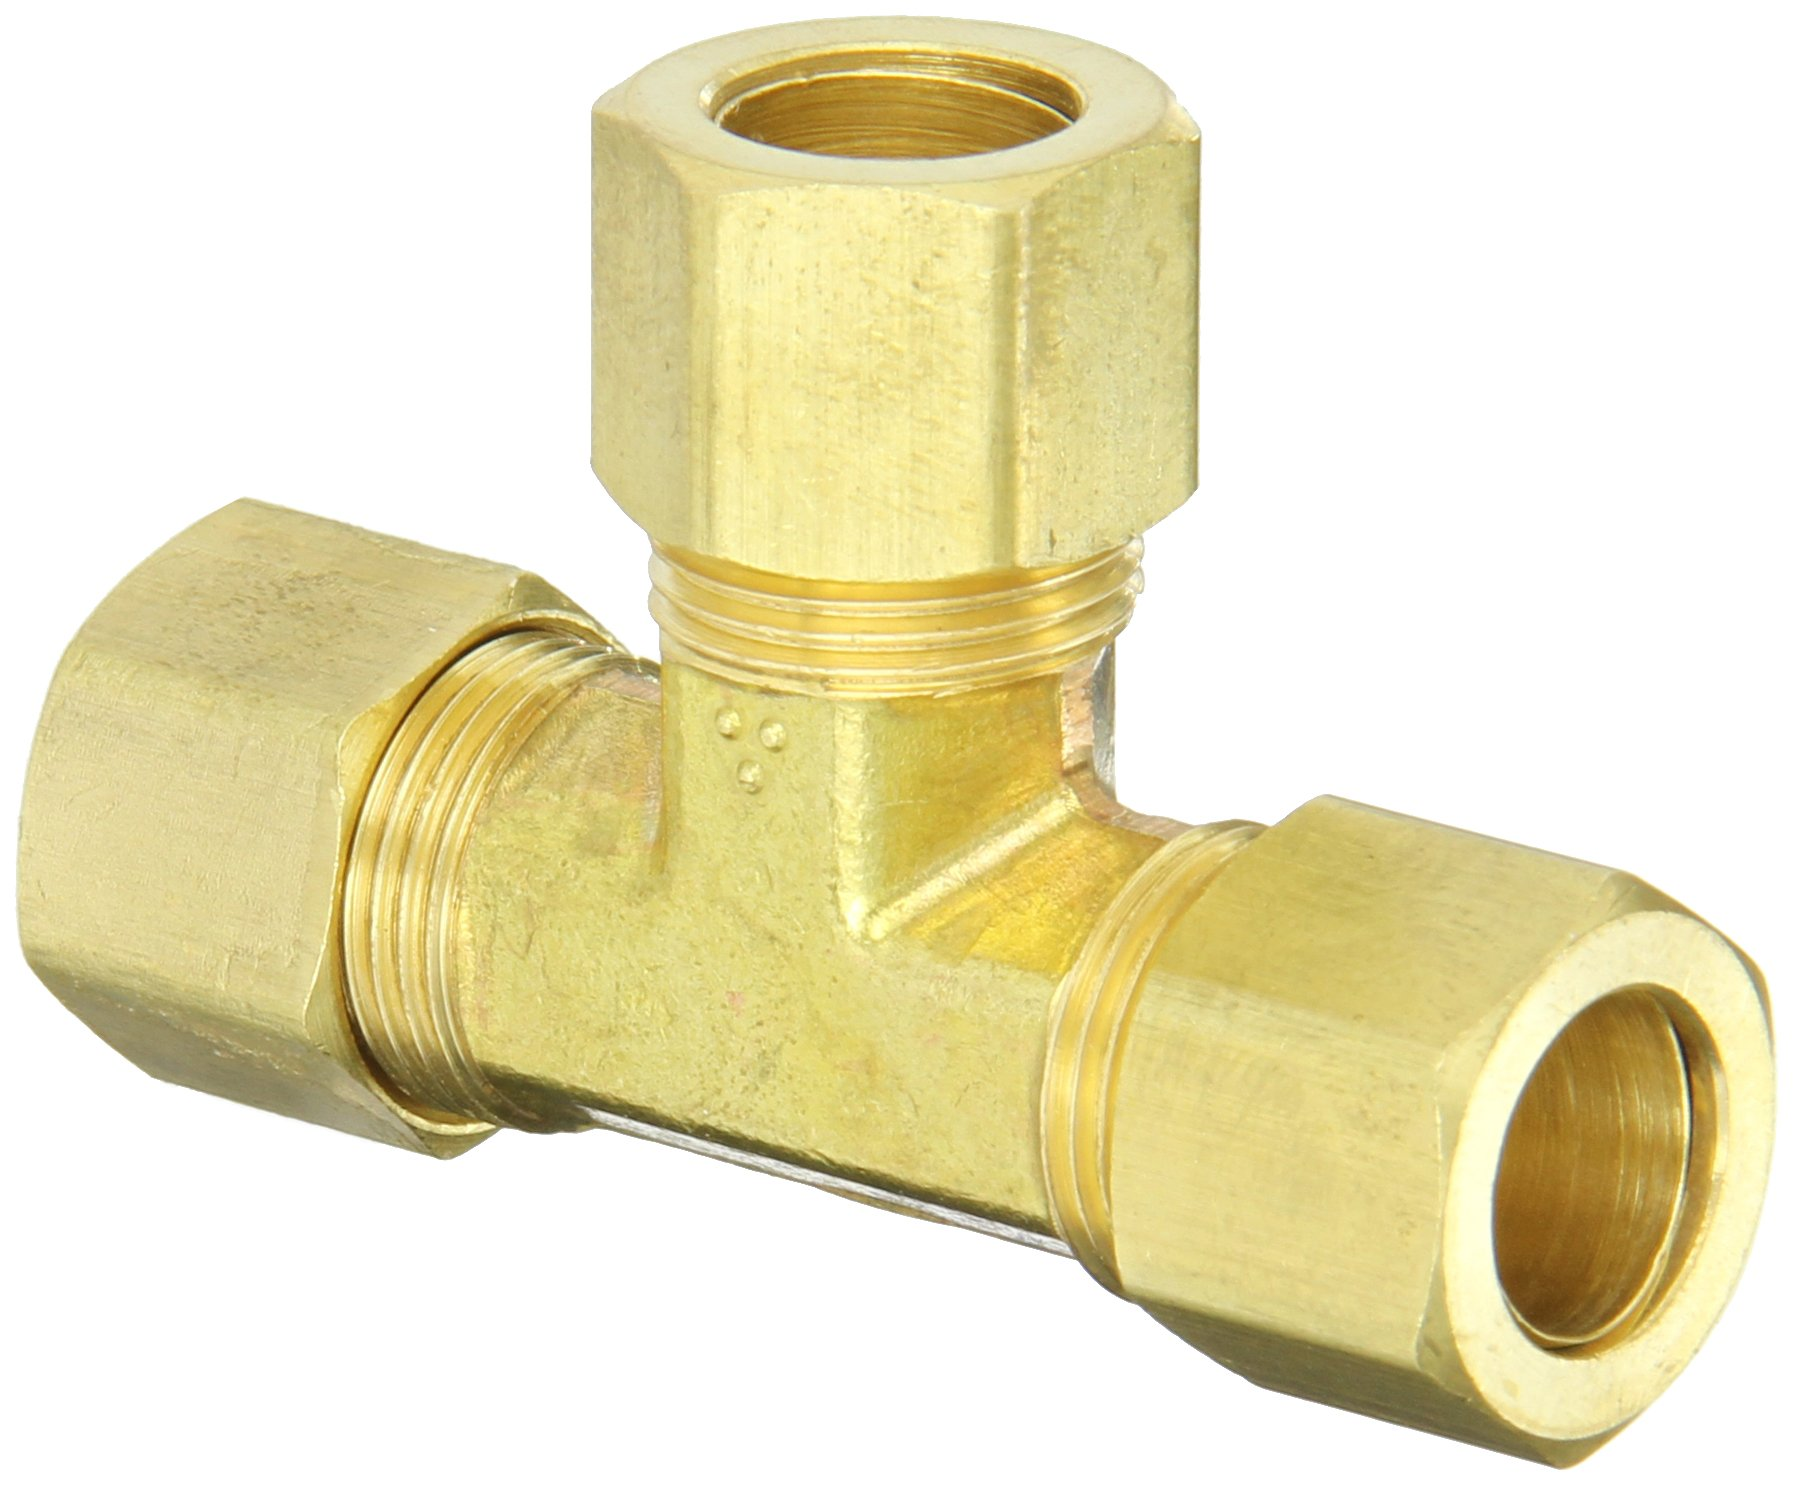 Anderson Metals 50064 Brass Compression Tube Fitting, Tee, 1/2'' x 1/2'' x 1/2'' Tube OD